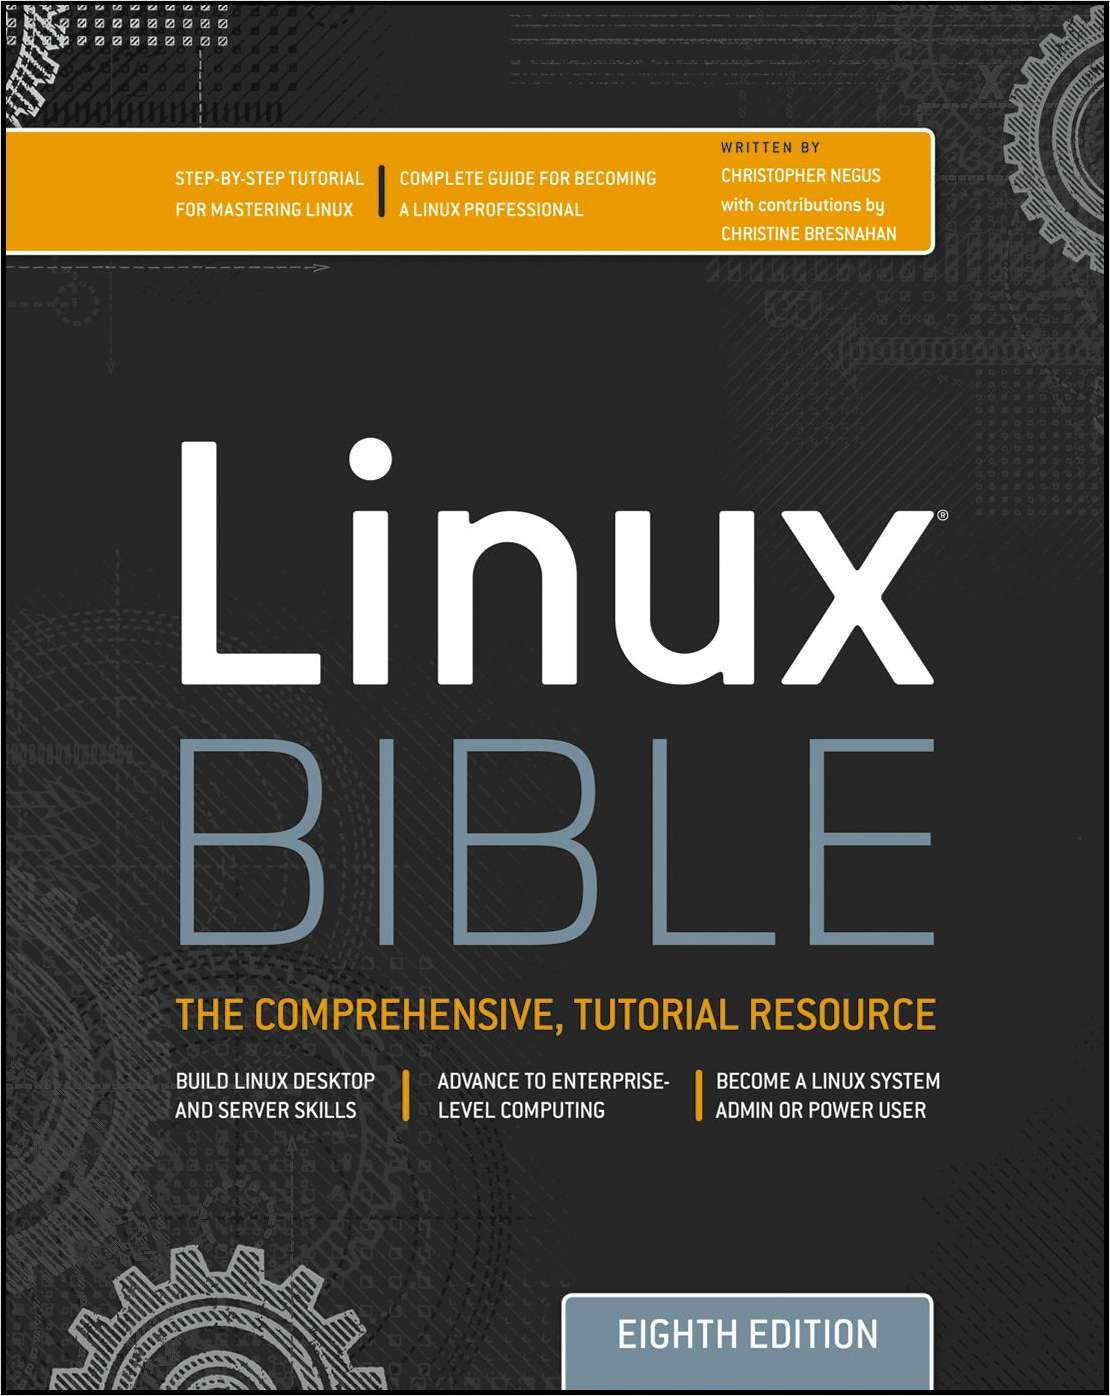 Linux Bible-- Complimentary Excerpt